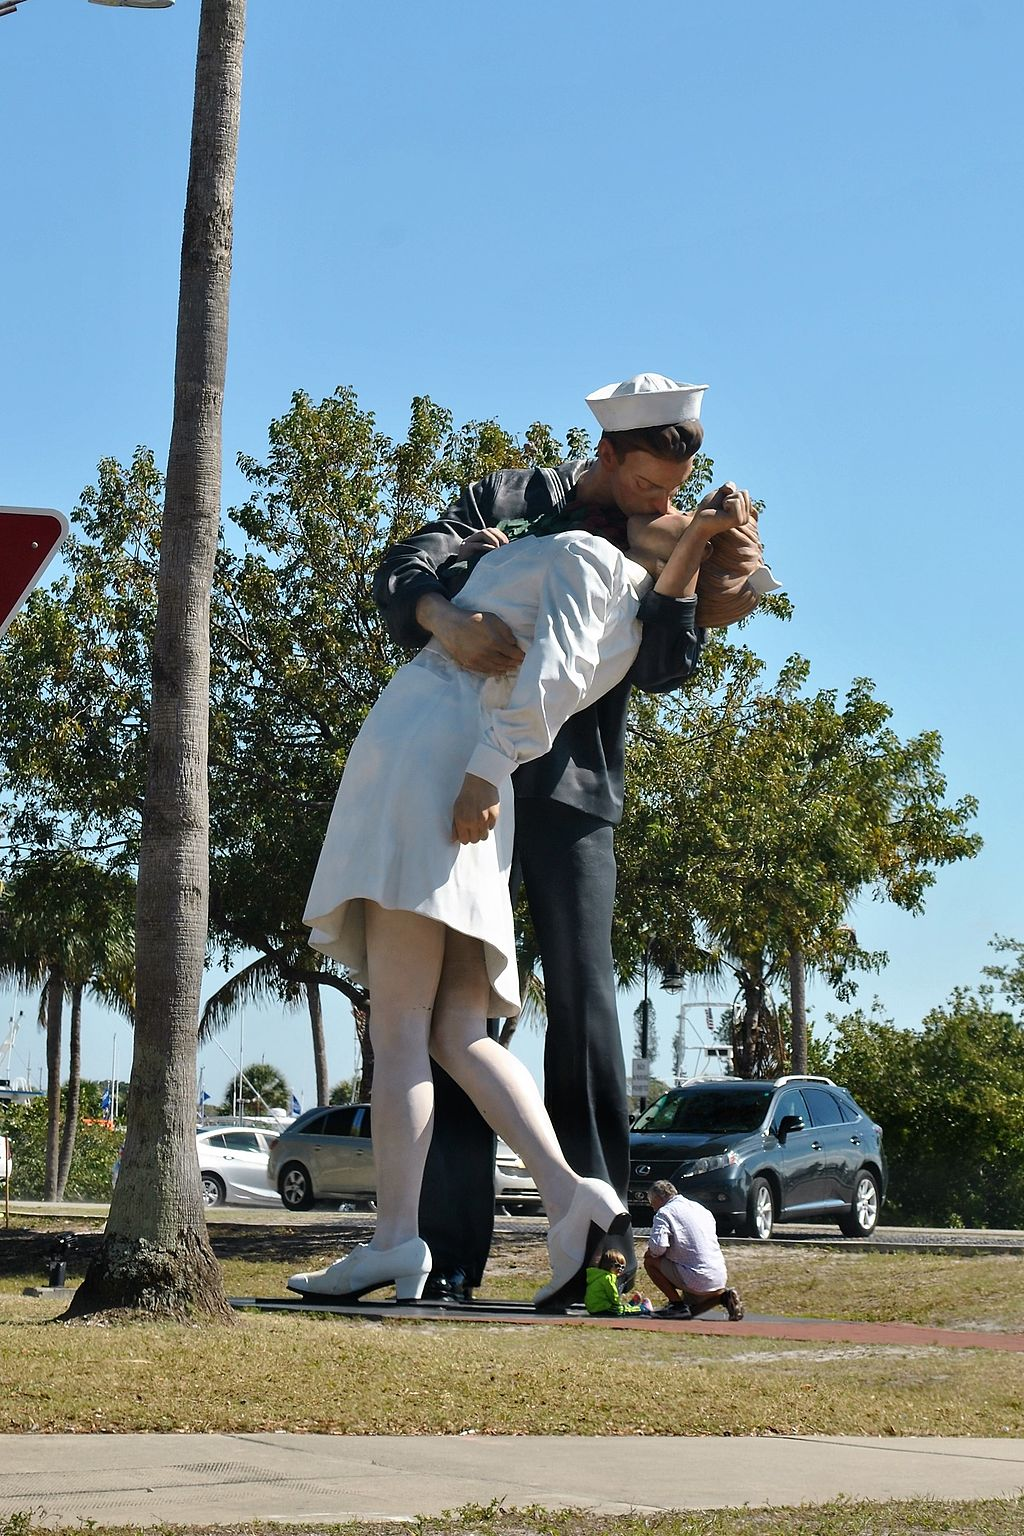 Unconditional Surrender, Saratosa